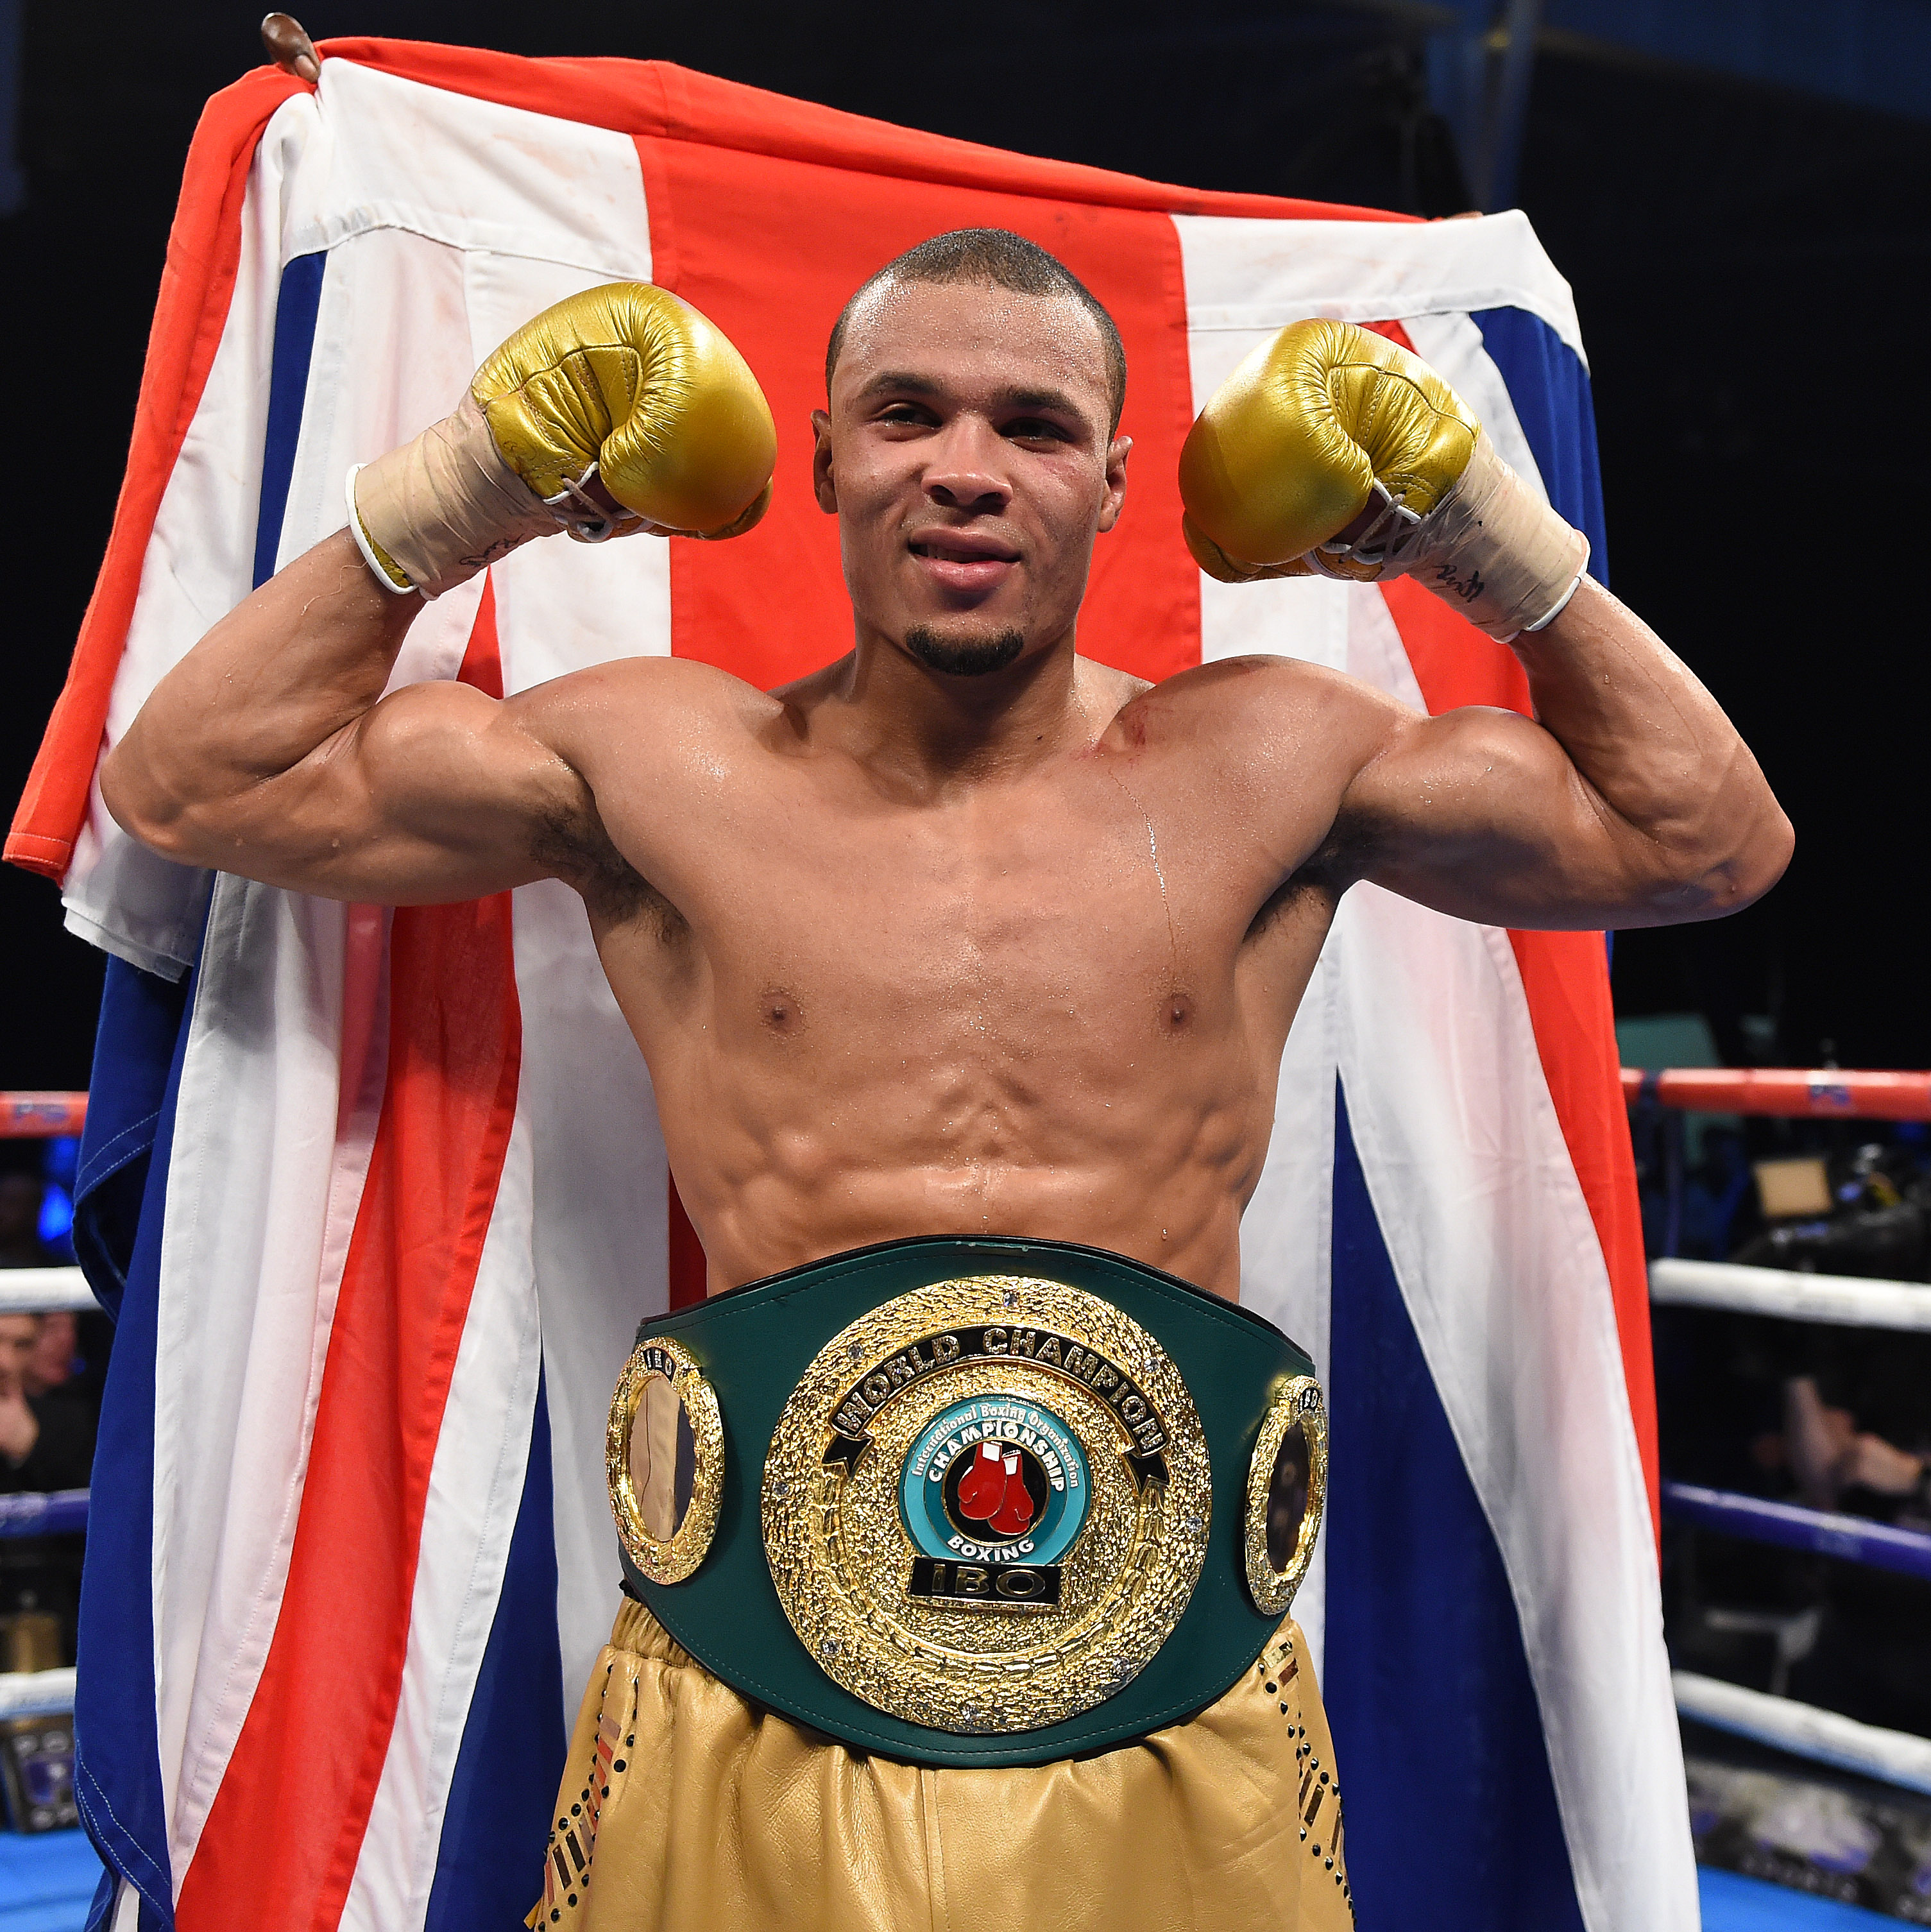 Chris Eubank Jnr warns James DeGale and Gennady Golovkin he is coming for them